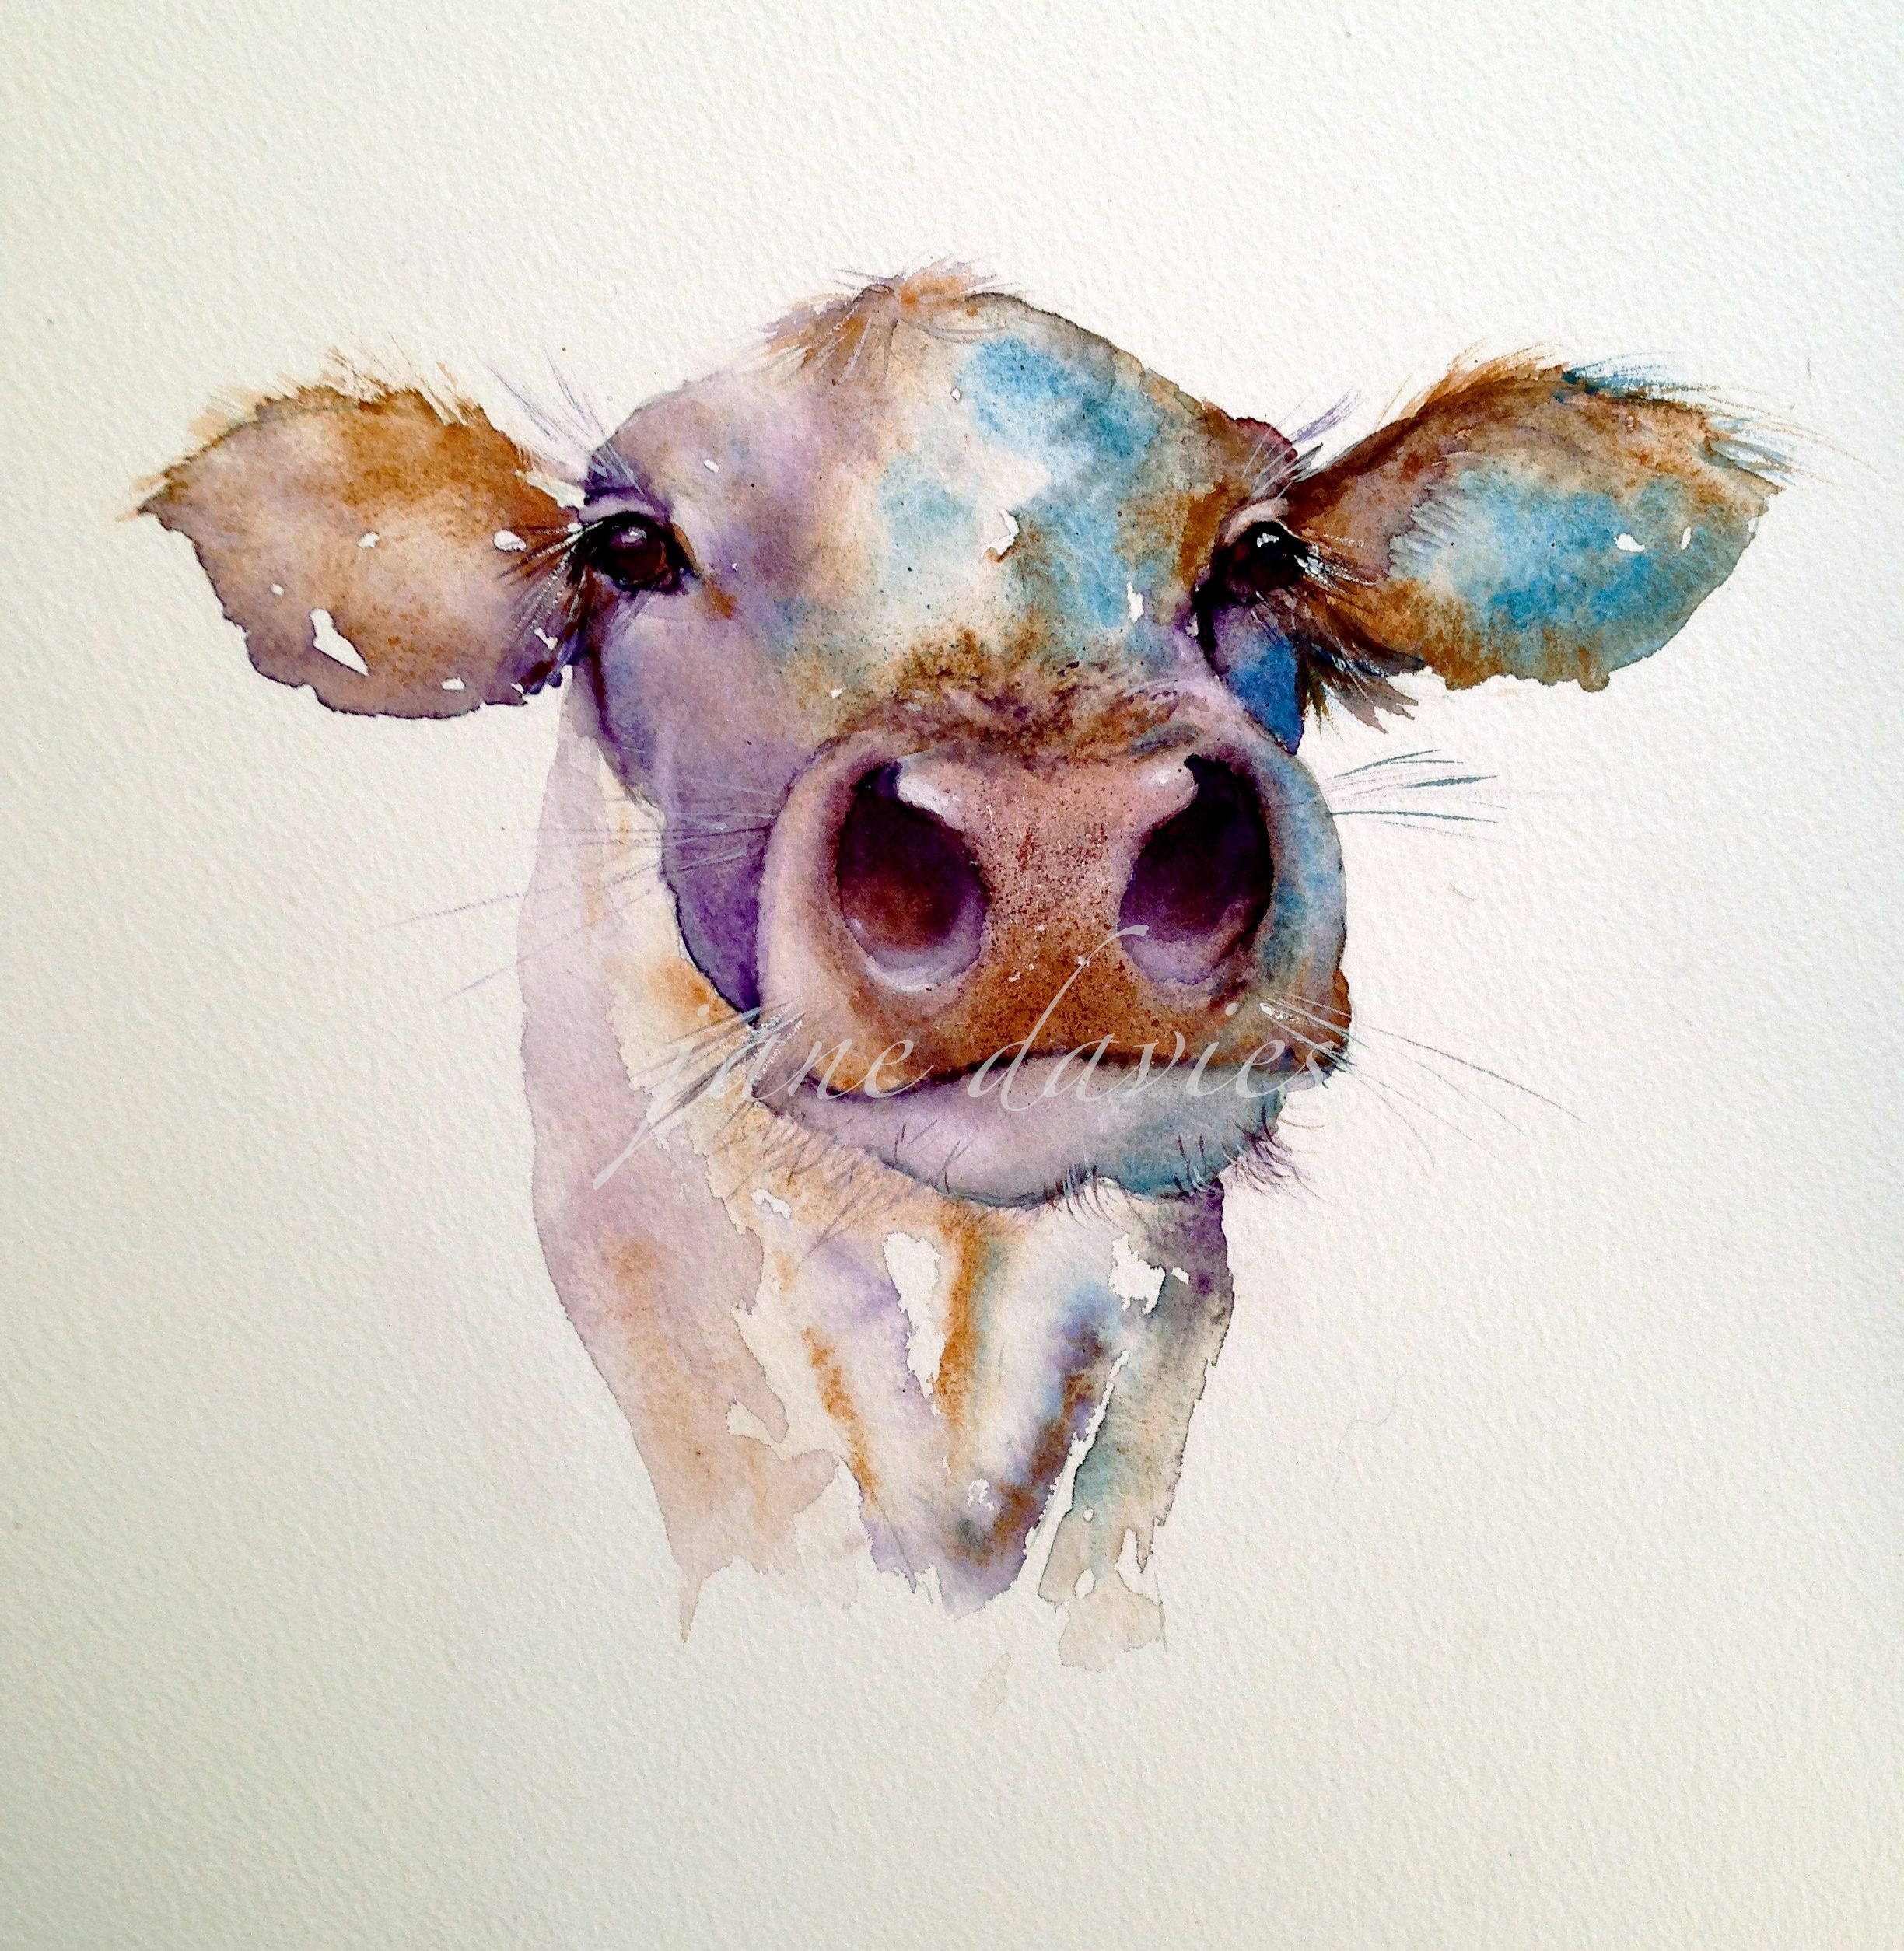 cow a painting in watercolour by artist jane davies | △RTS,CR